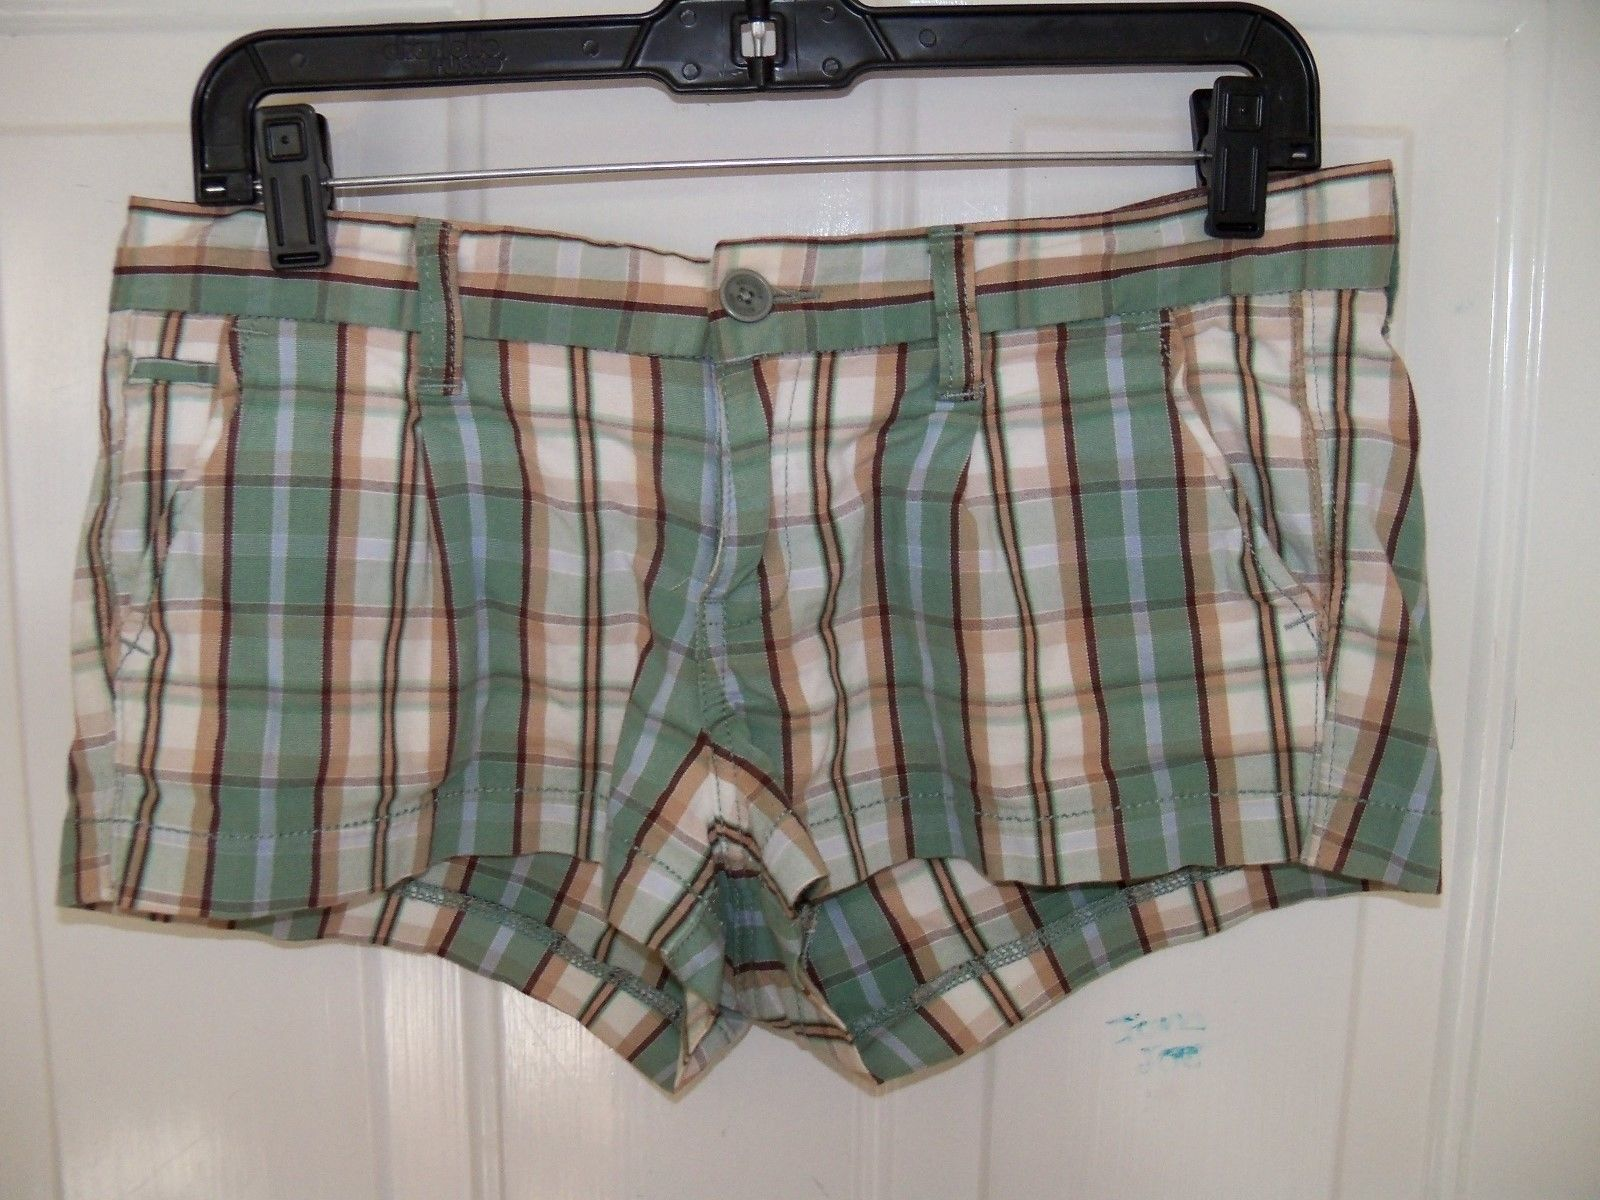 Primary image for Hollister Green/Brown/White Plaid Shorts Size 5 Women's EUC